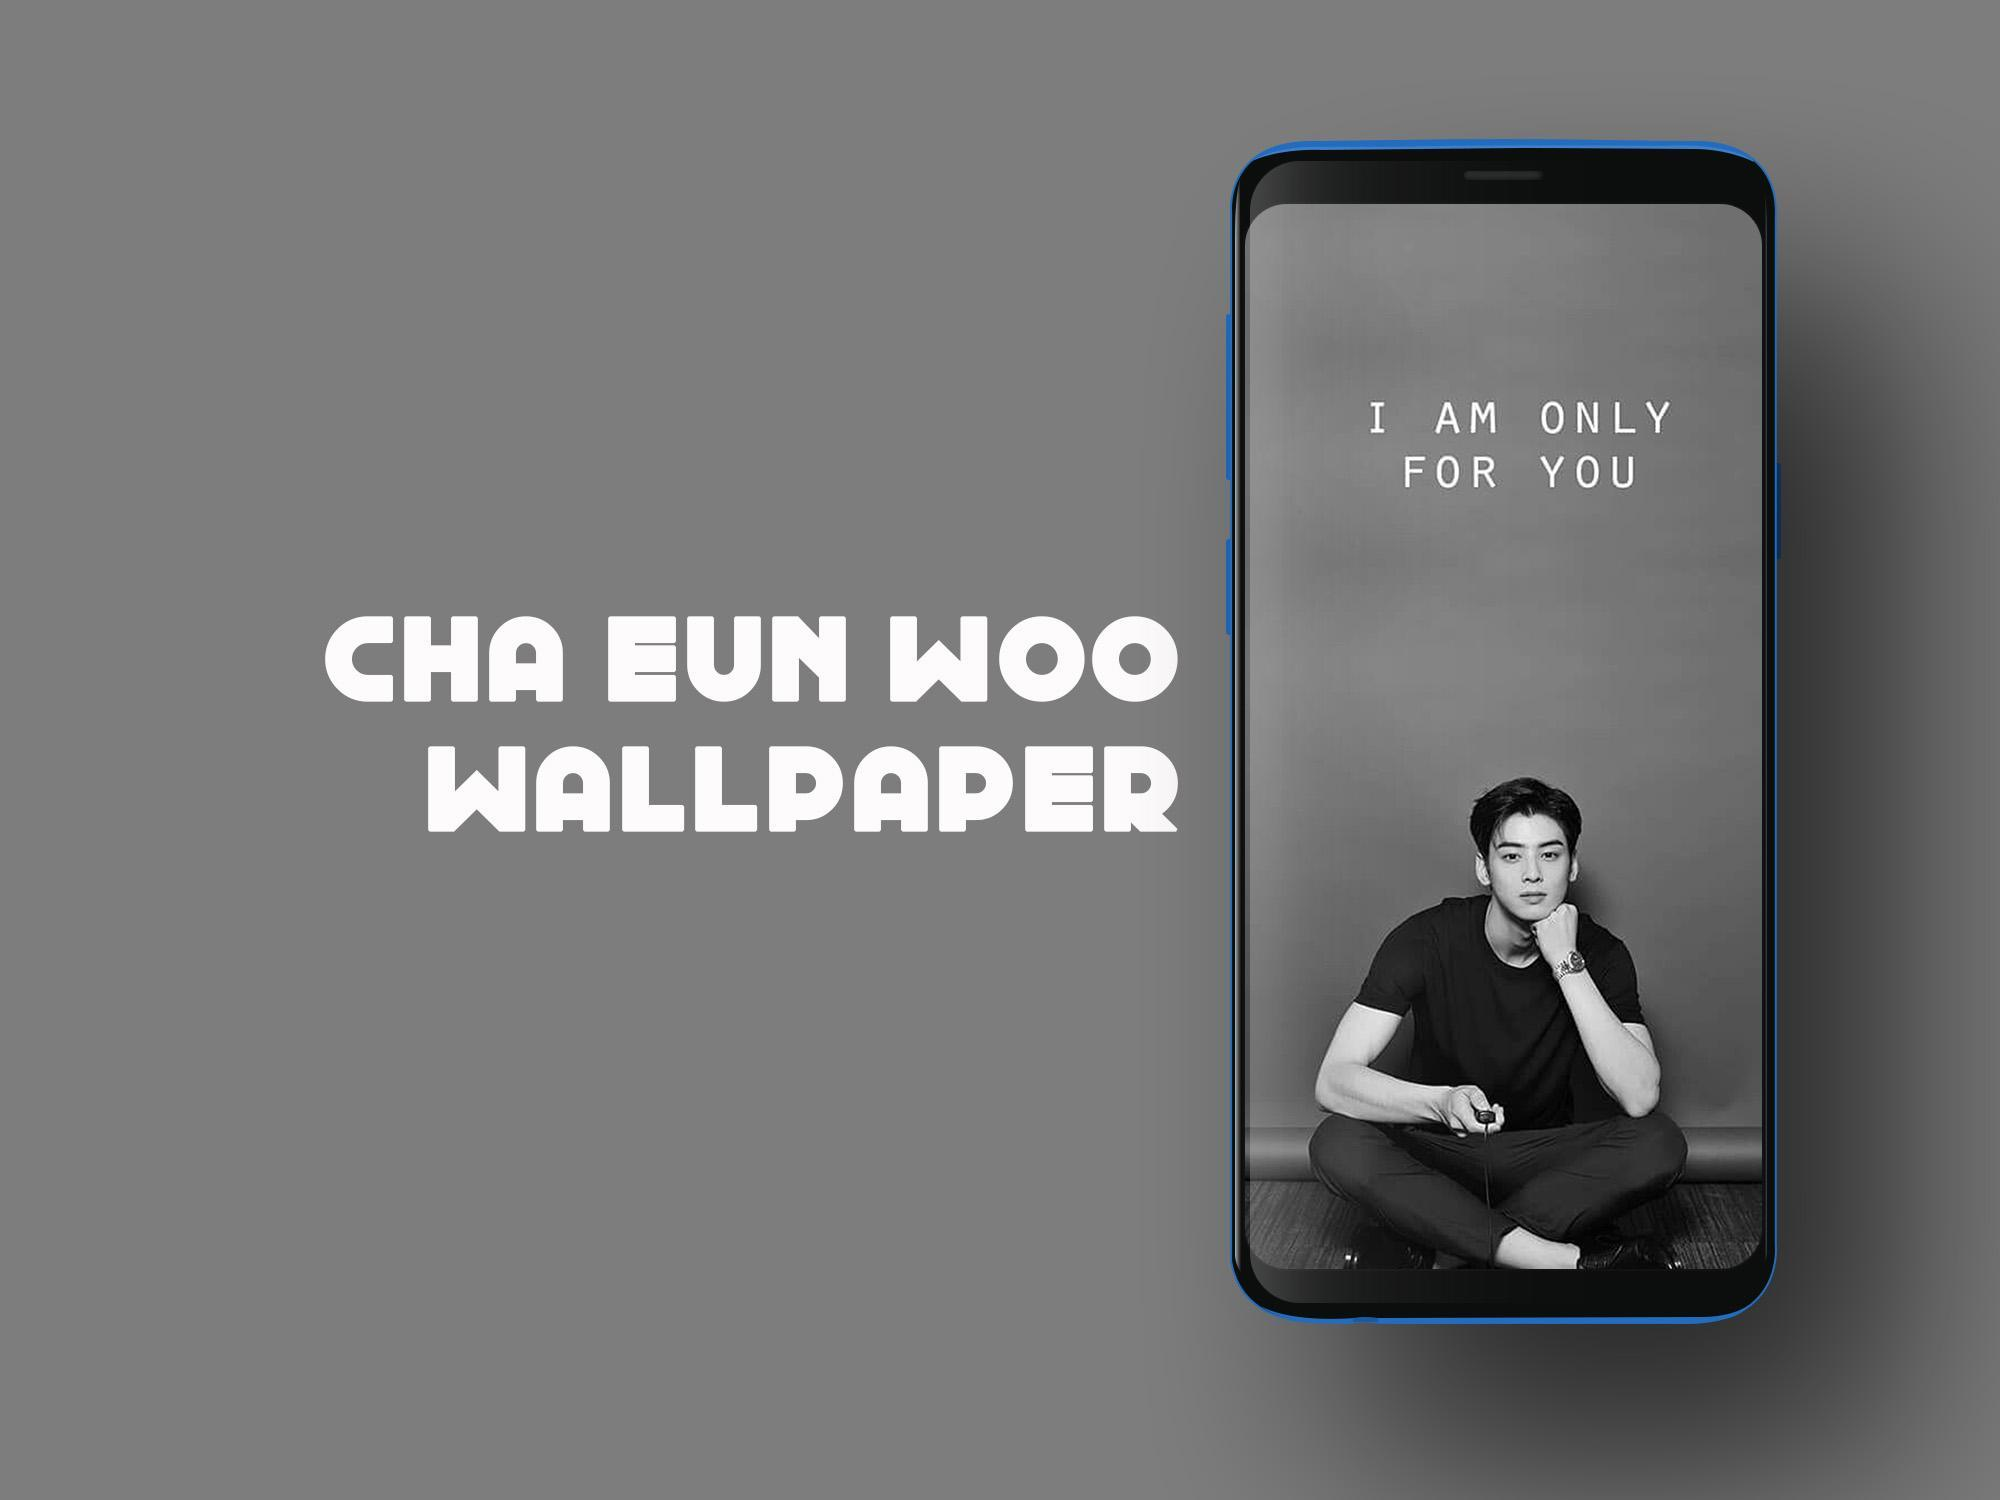 Cha Eun Woo Wallpapers Kpop Fans Hd For Android Apk Download